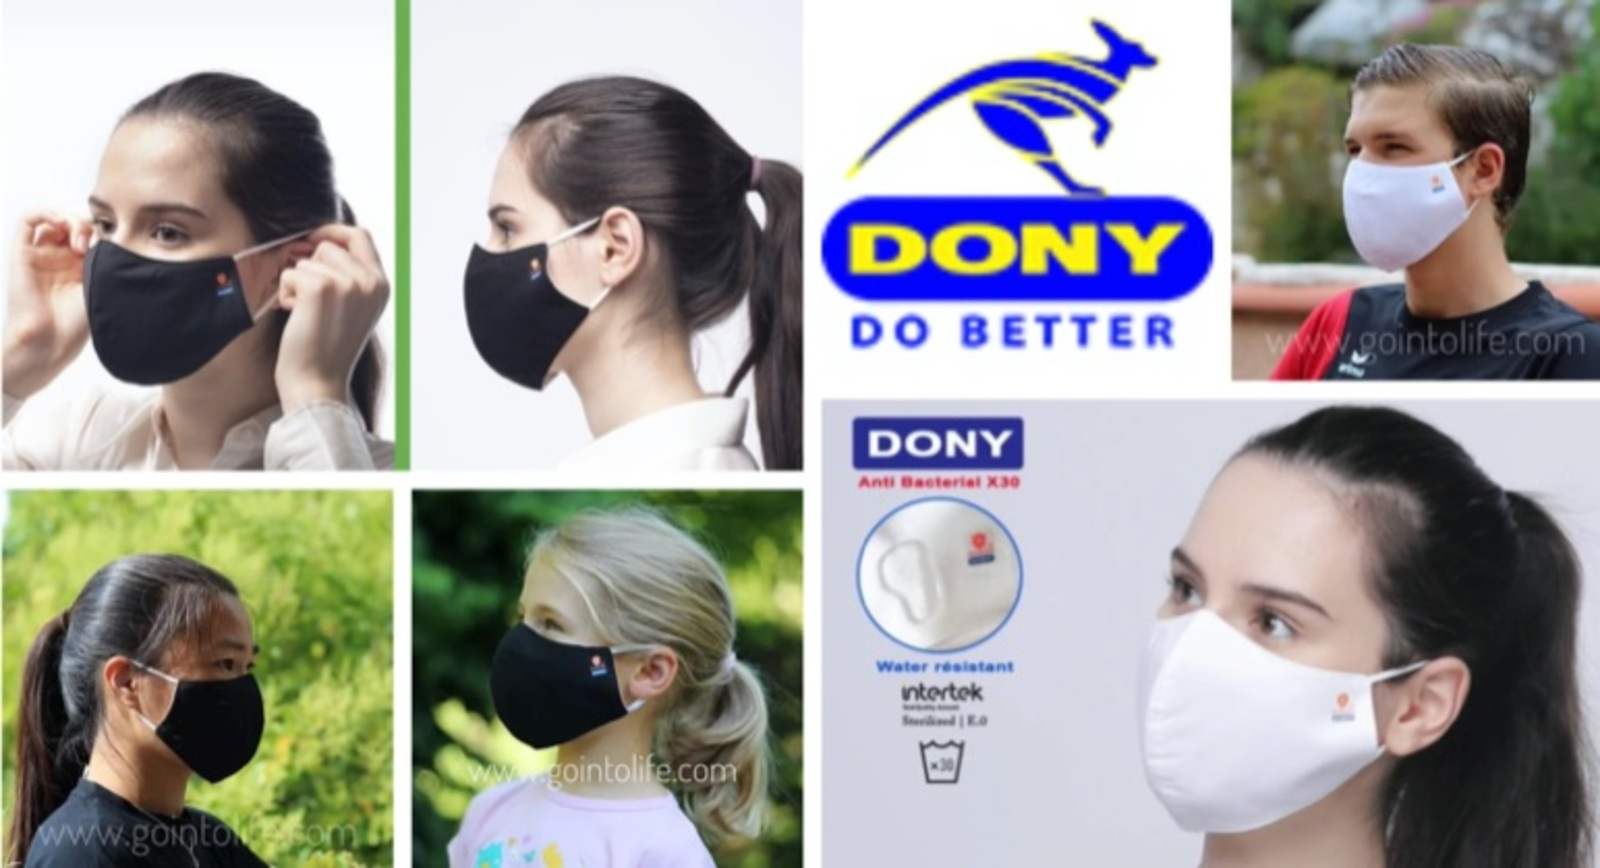 DONY FACE MASK